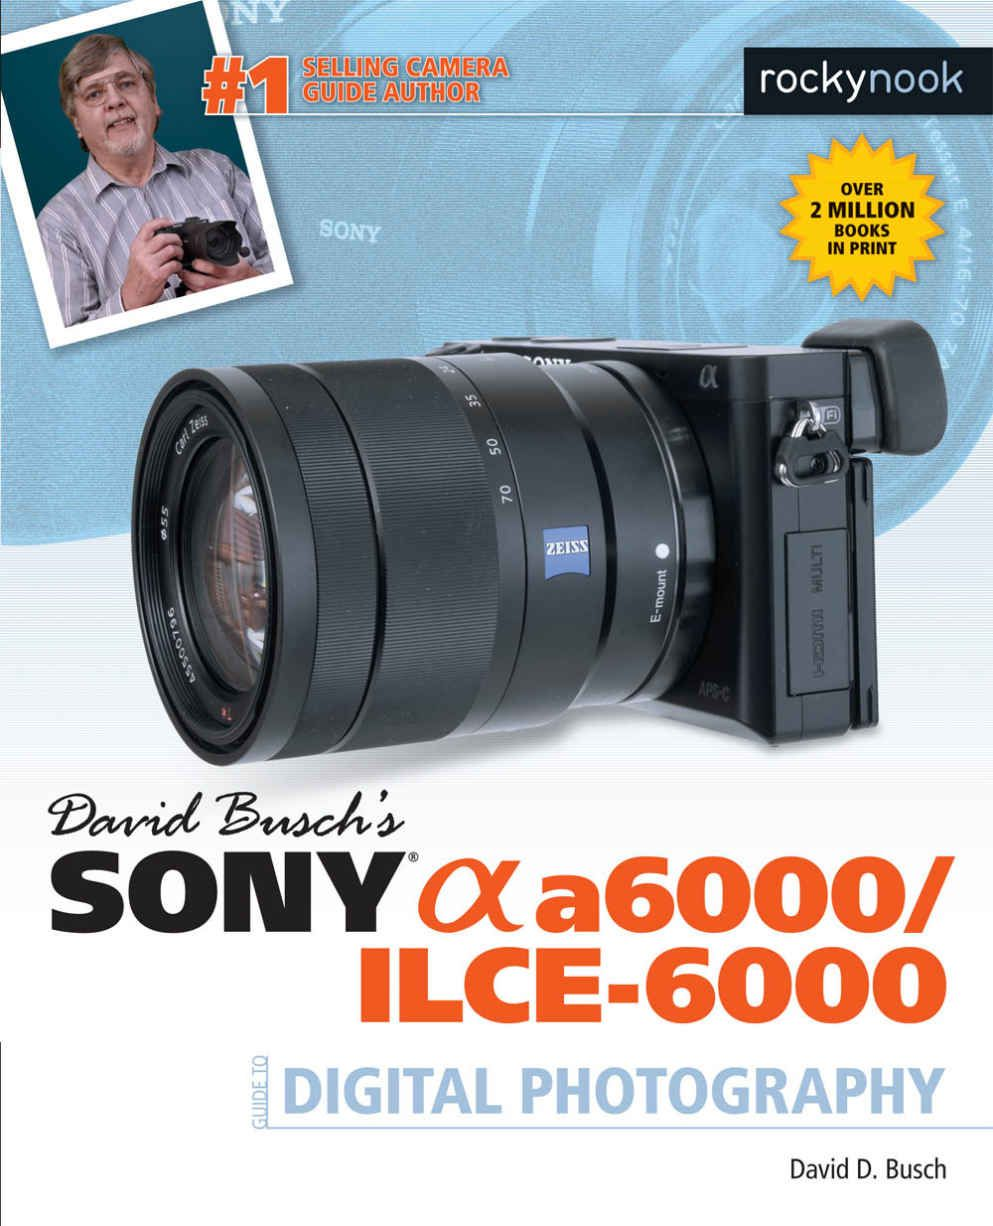 The best-selling and universally-praised bible for the Sony Alpha a6000 is finally back in print! David Busch's Sony a6000 Guide to Digital Photography is your all-in-one resource and reference for the Sony Alpha a6000, and now it's available in both printed and ebook form from Rocky Nook